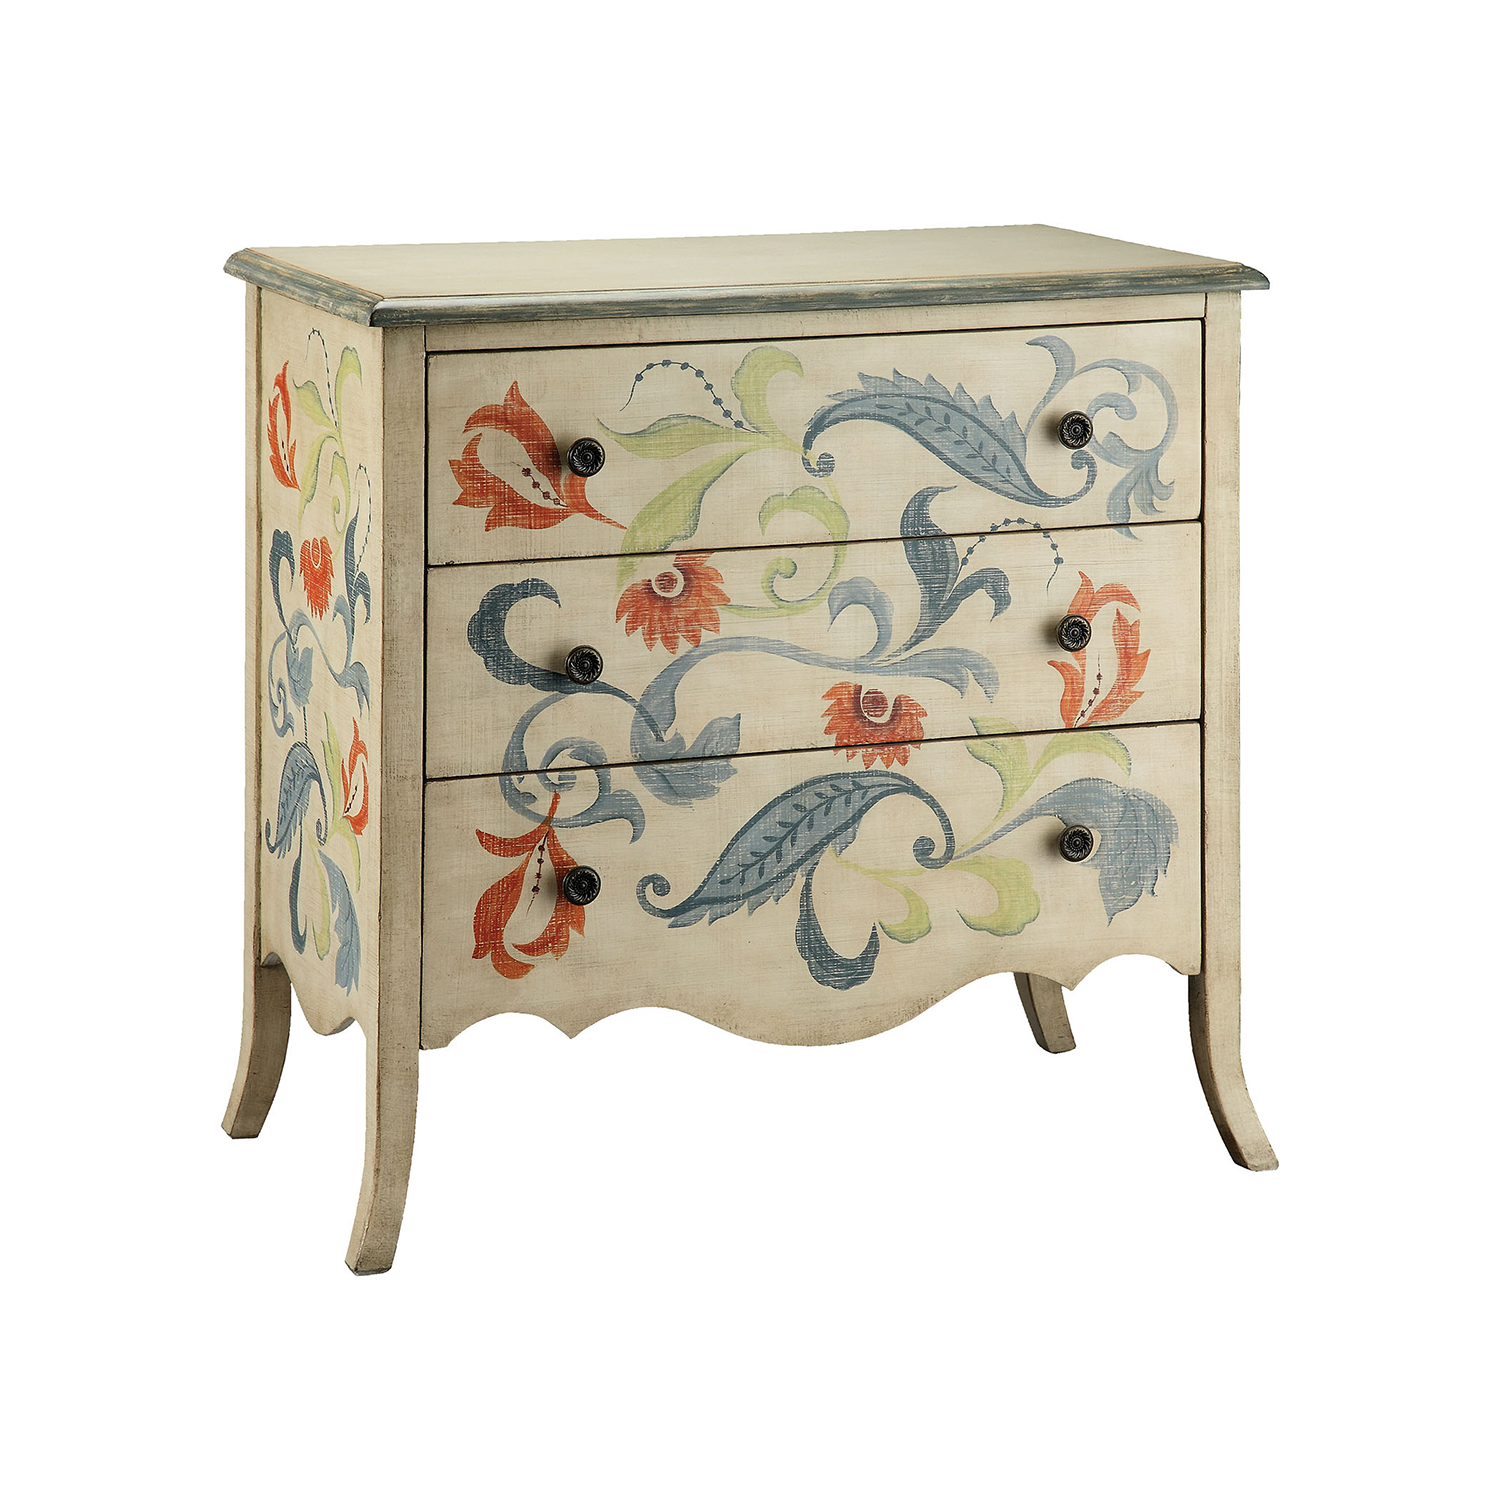 stein world hand painted cream and blue gray chest accent tables chests hover zoom piece dining set bathroom stand wood living room furniture small wrought iron table pedestal